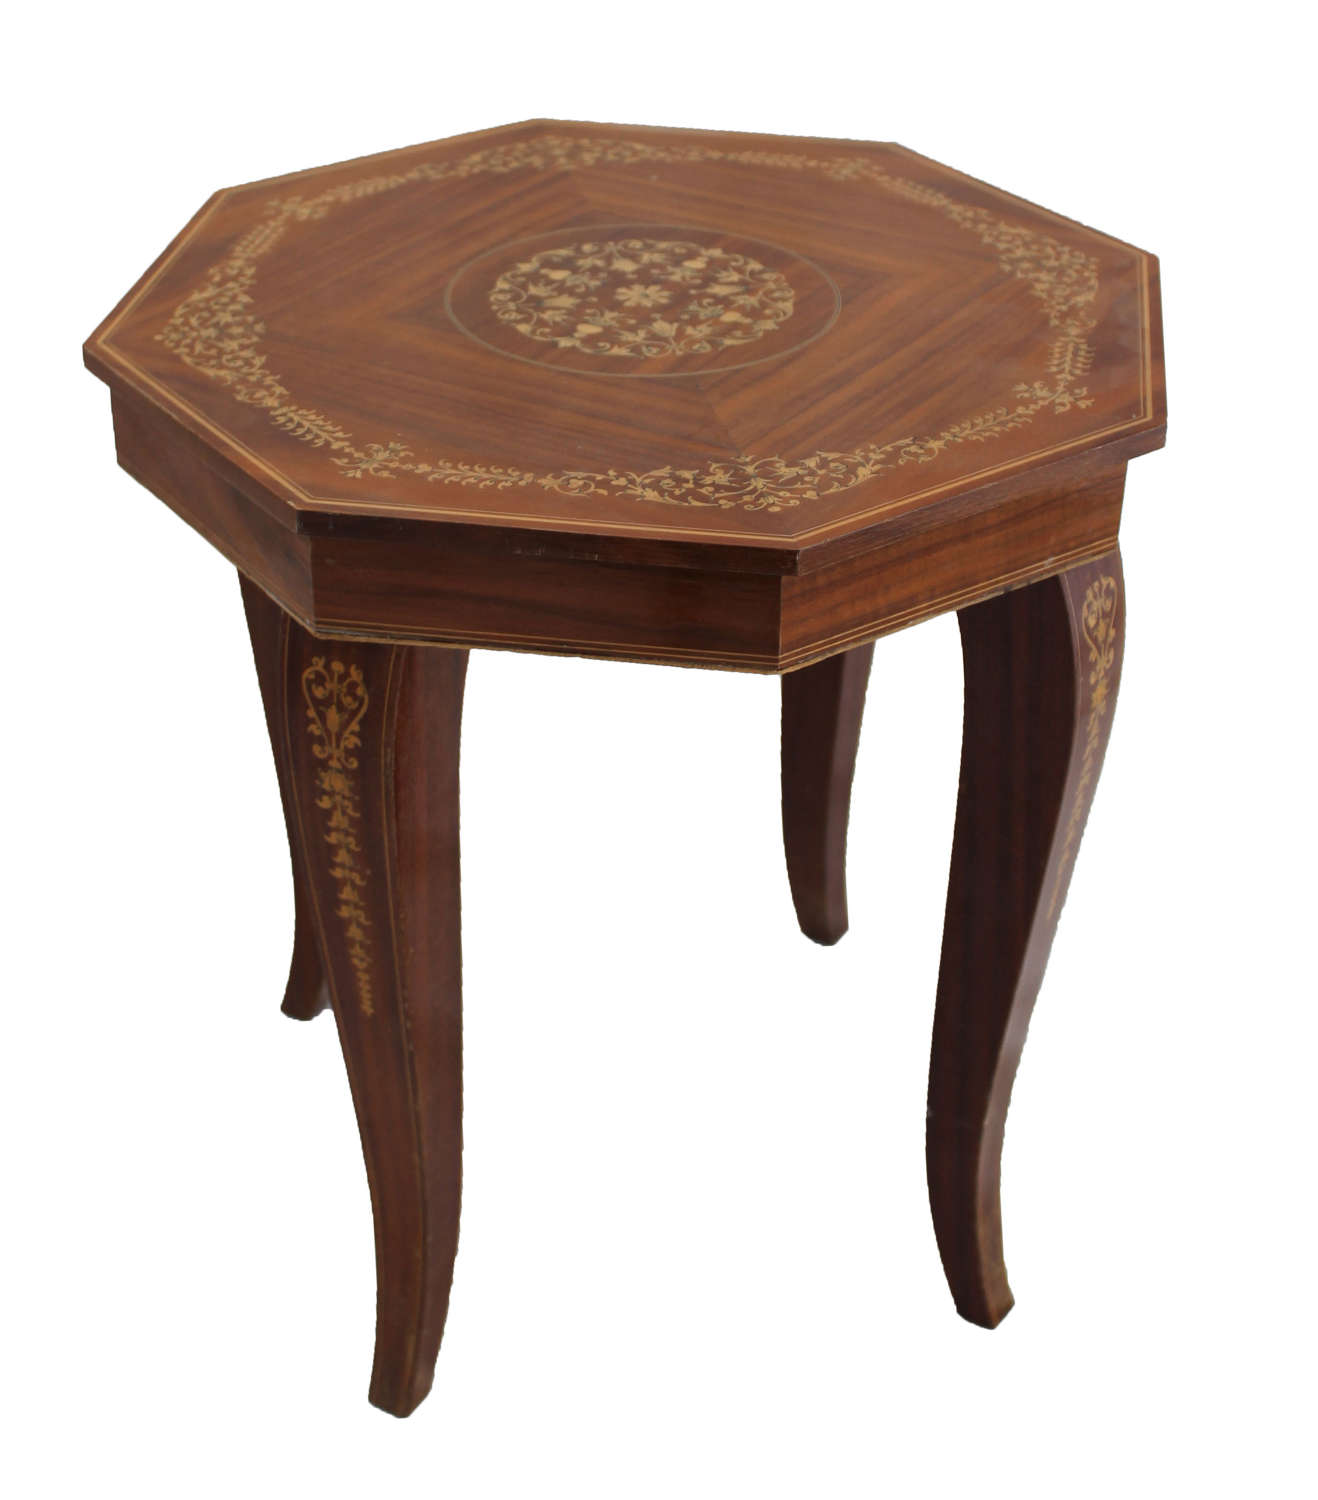 Octagonal Sorrento Table with inlay